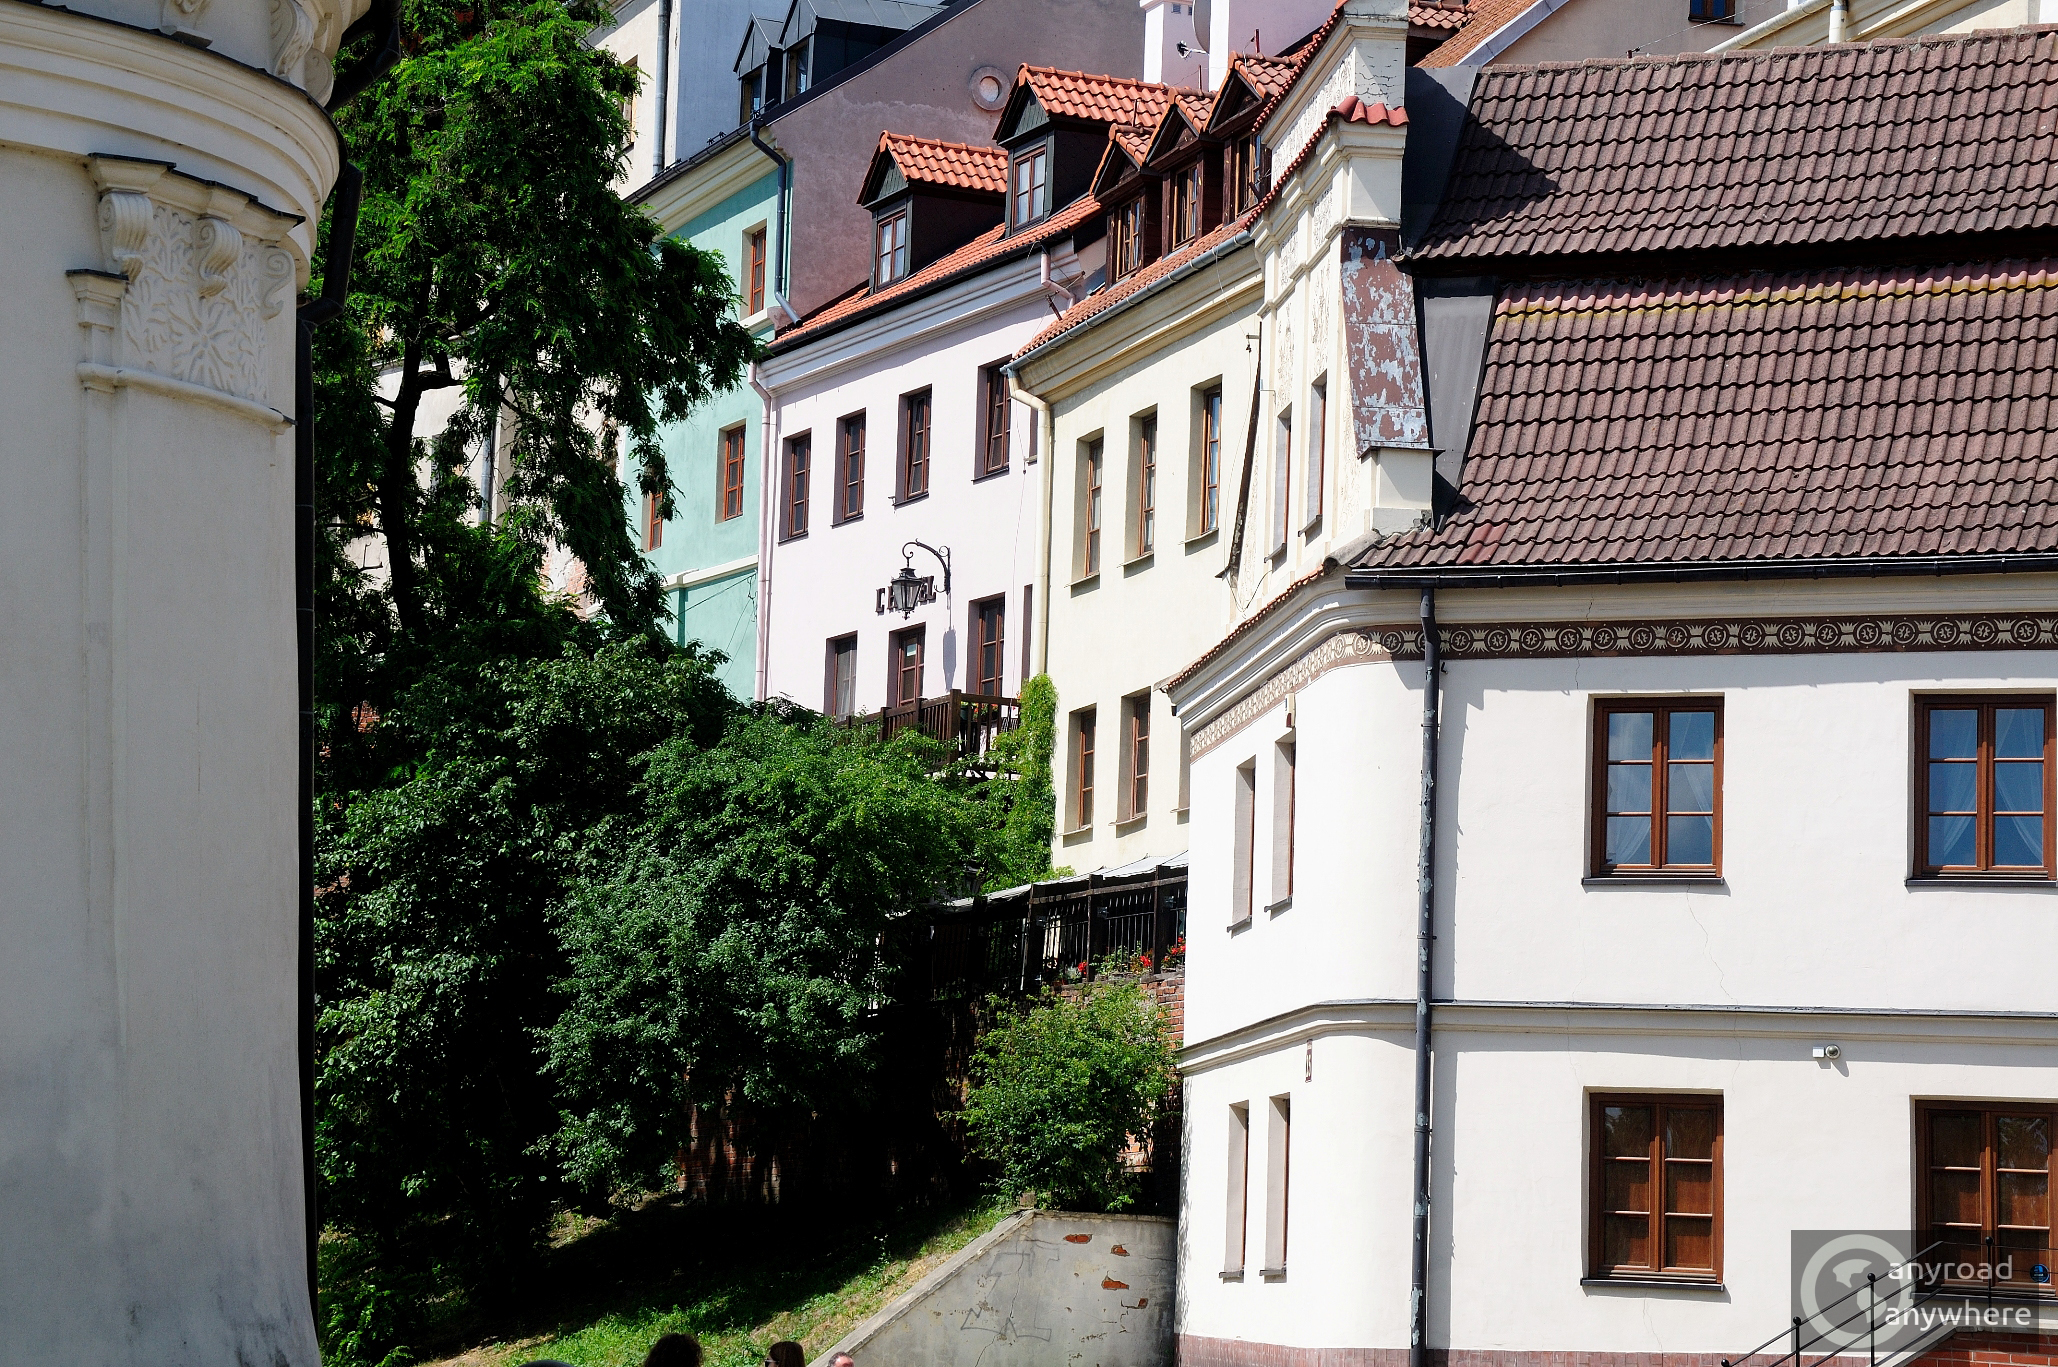 Houses in the lovely old part of Lublin